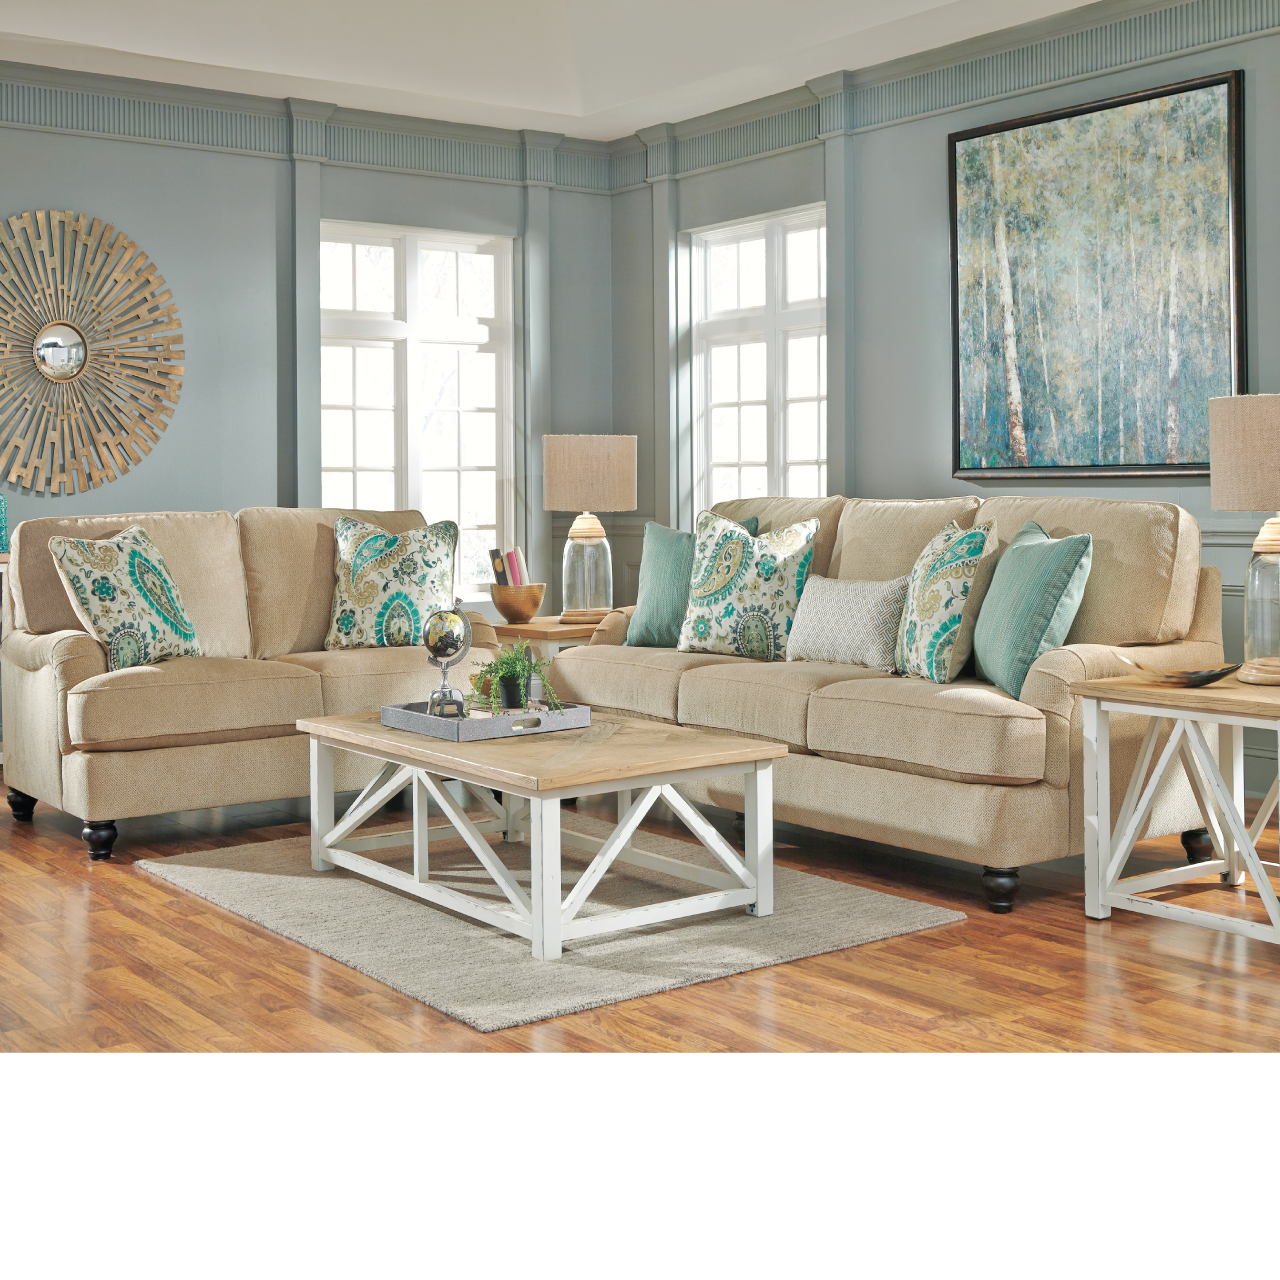 coastal living room ideas: lochian sofa by ashley furniture at